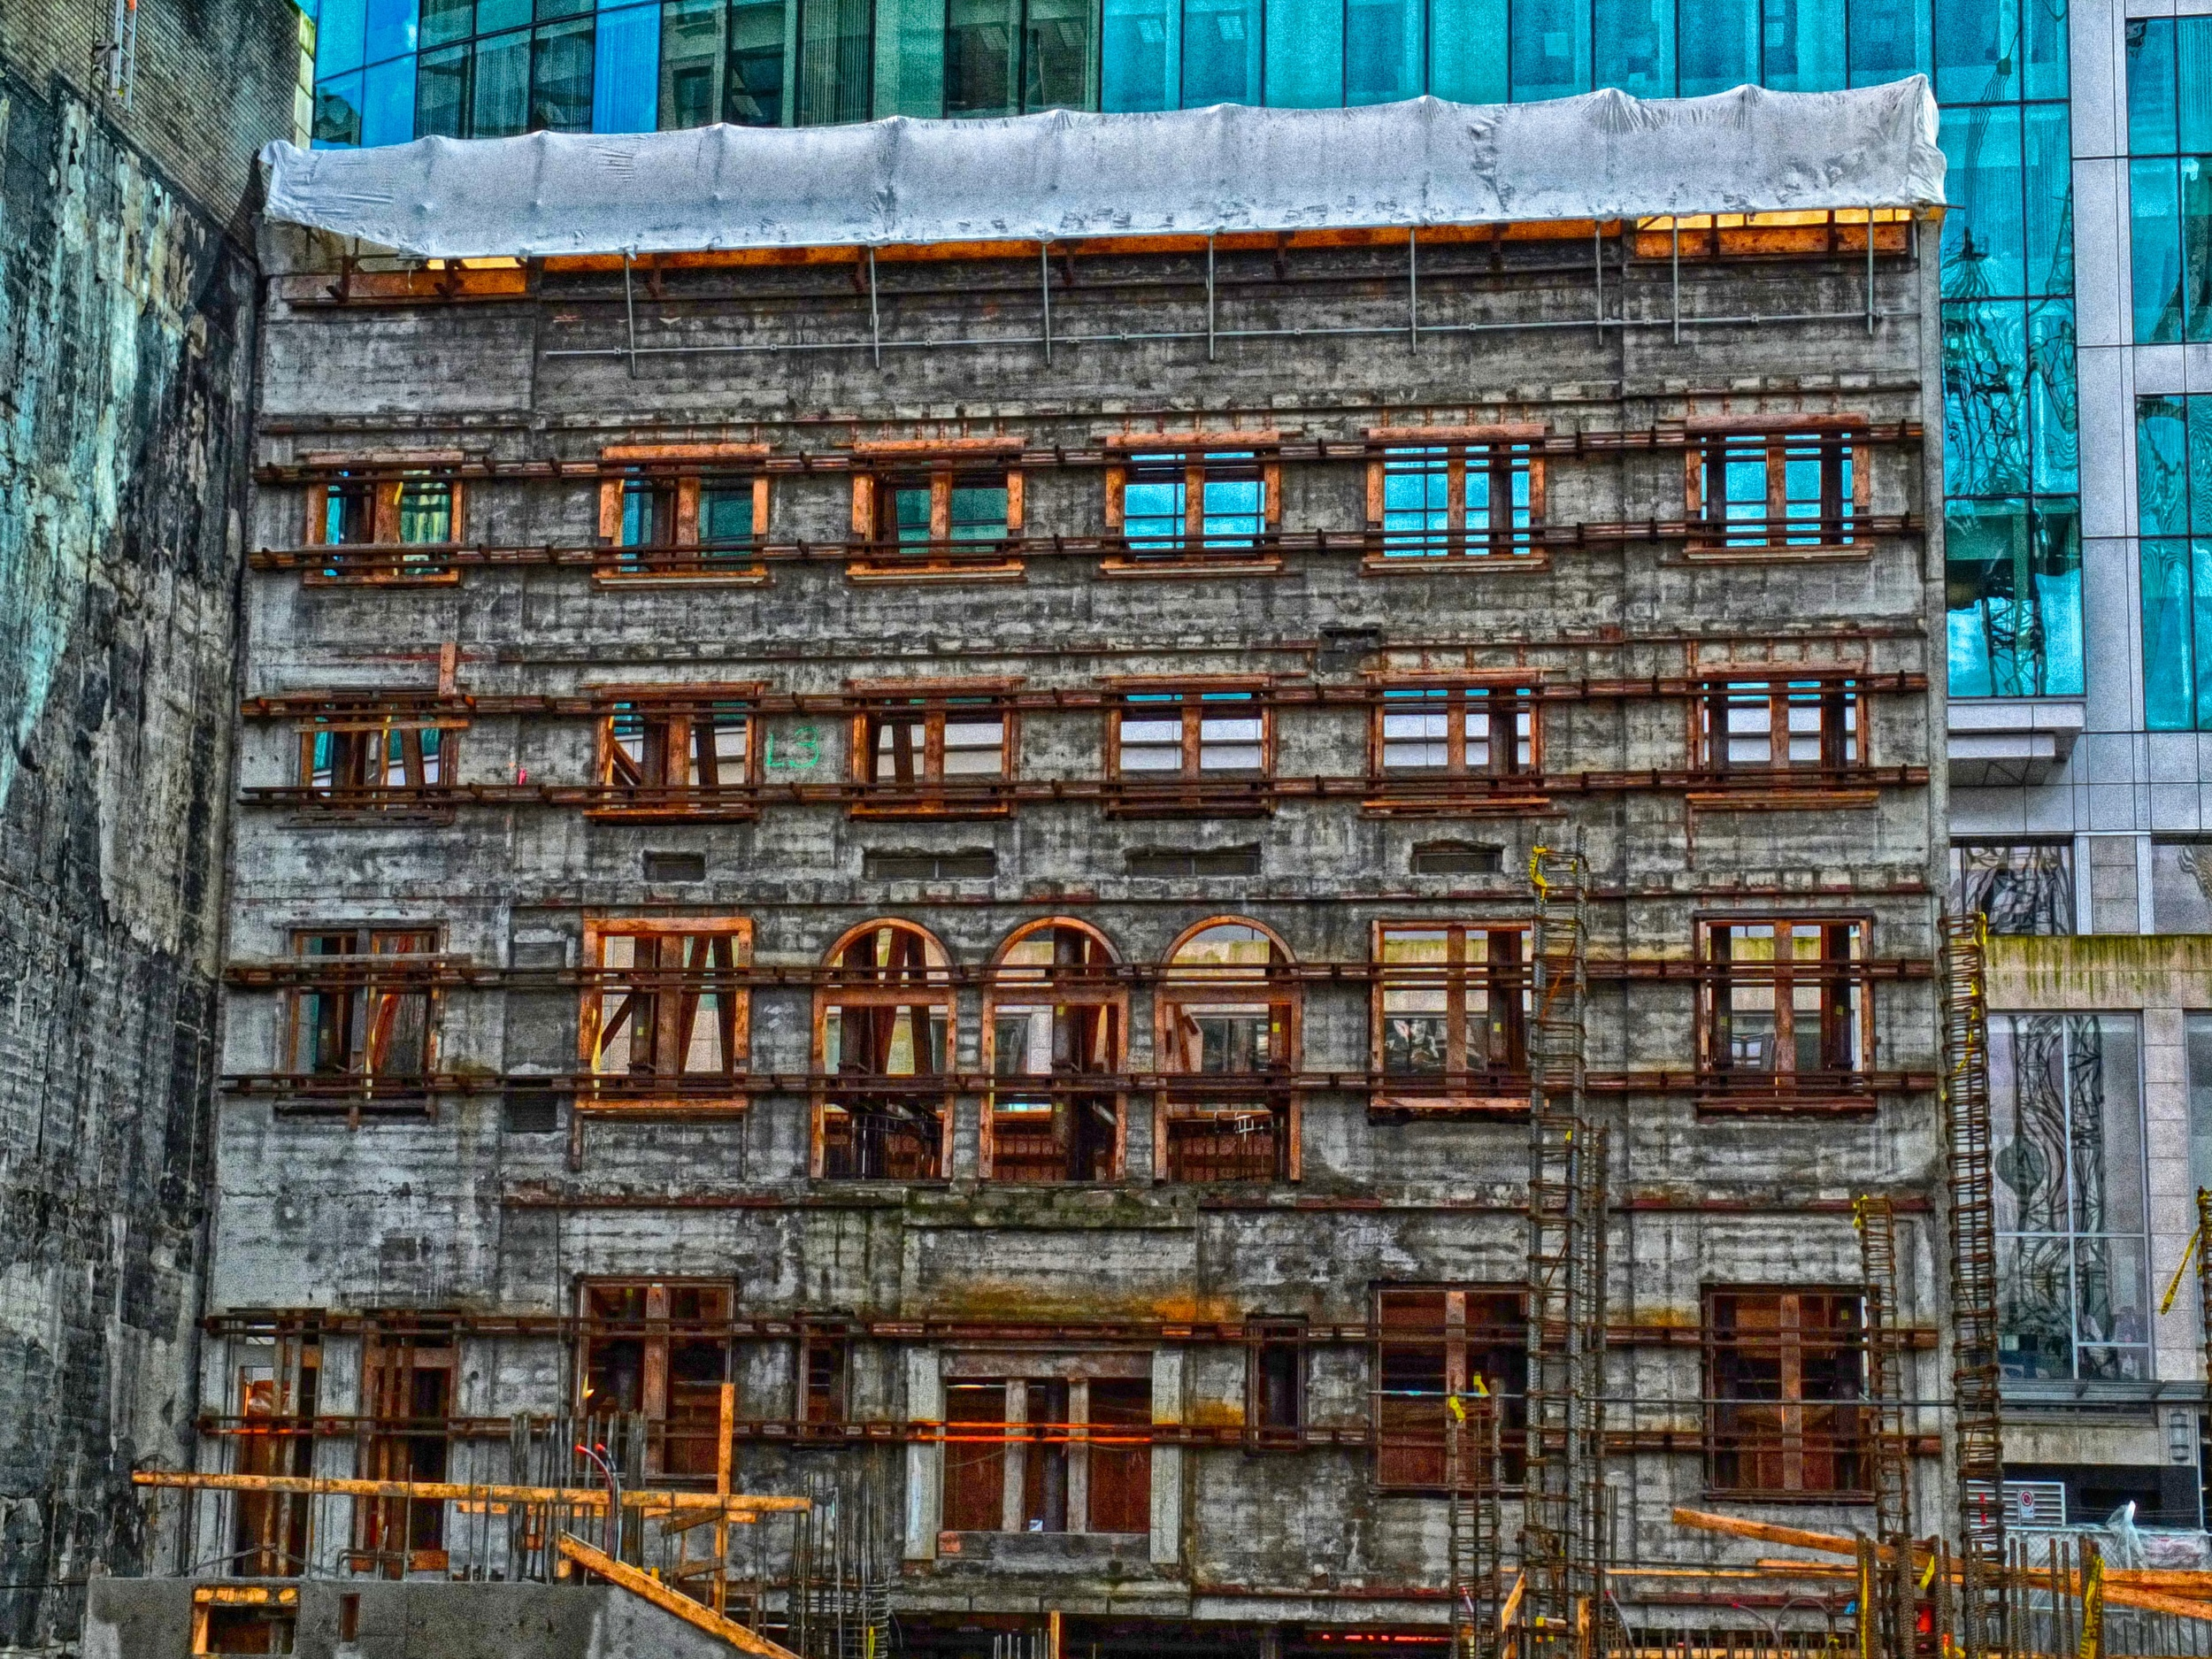 2013-03-20 at 10-13-32 Blue, Construction, Glass, Grey, Scaffolding, Stone, Urban, Wall.jpg